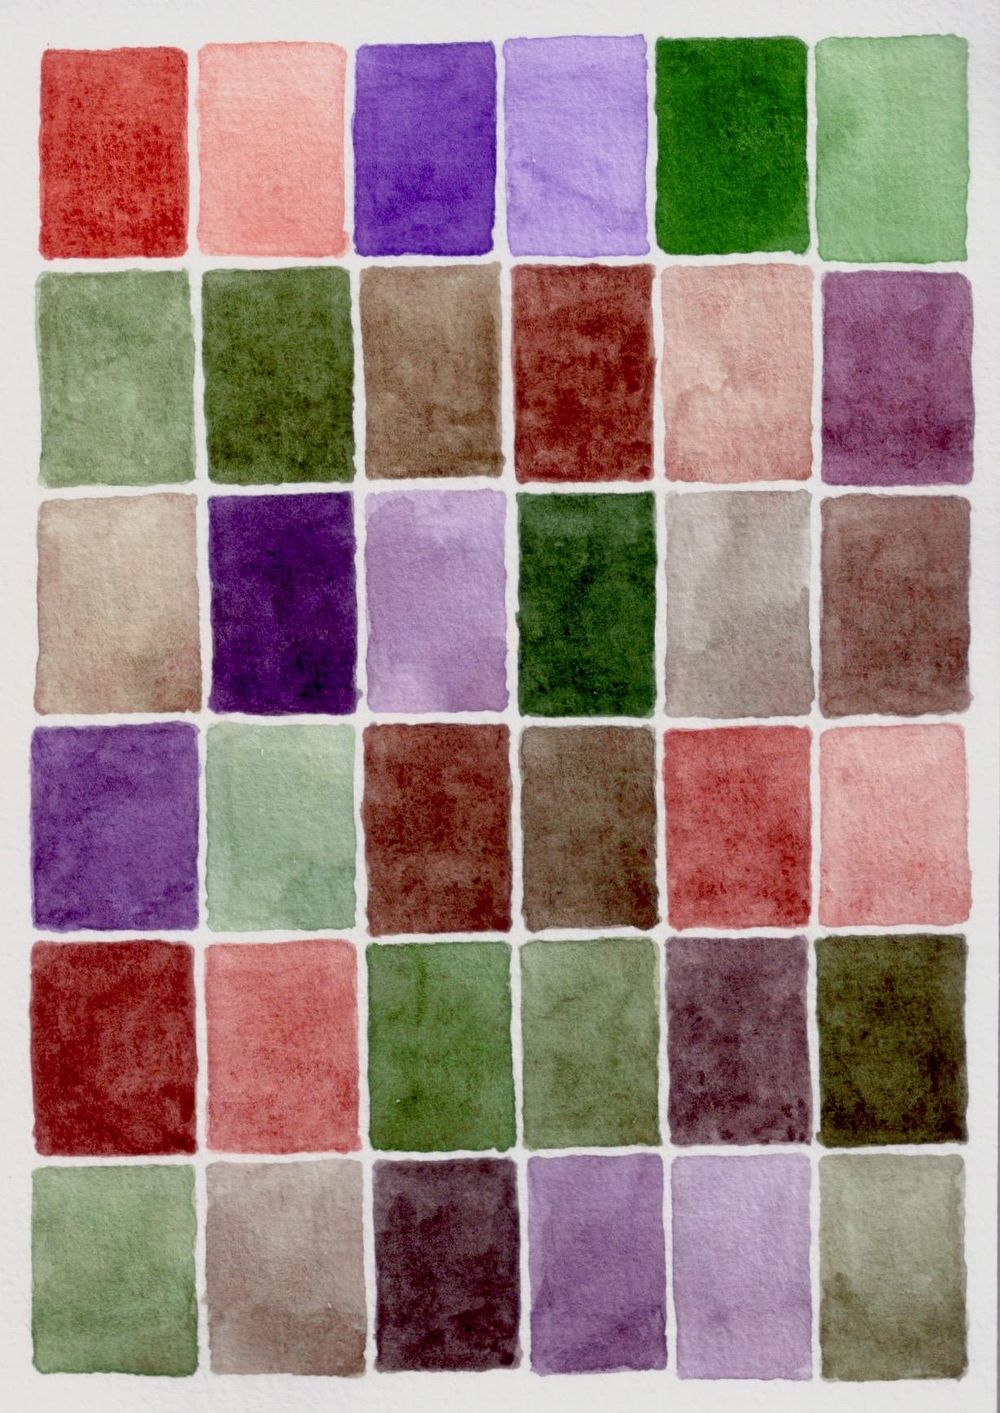 Intuitive Colour Mixing - image 2 - student project